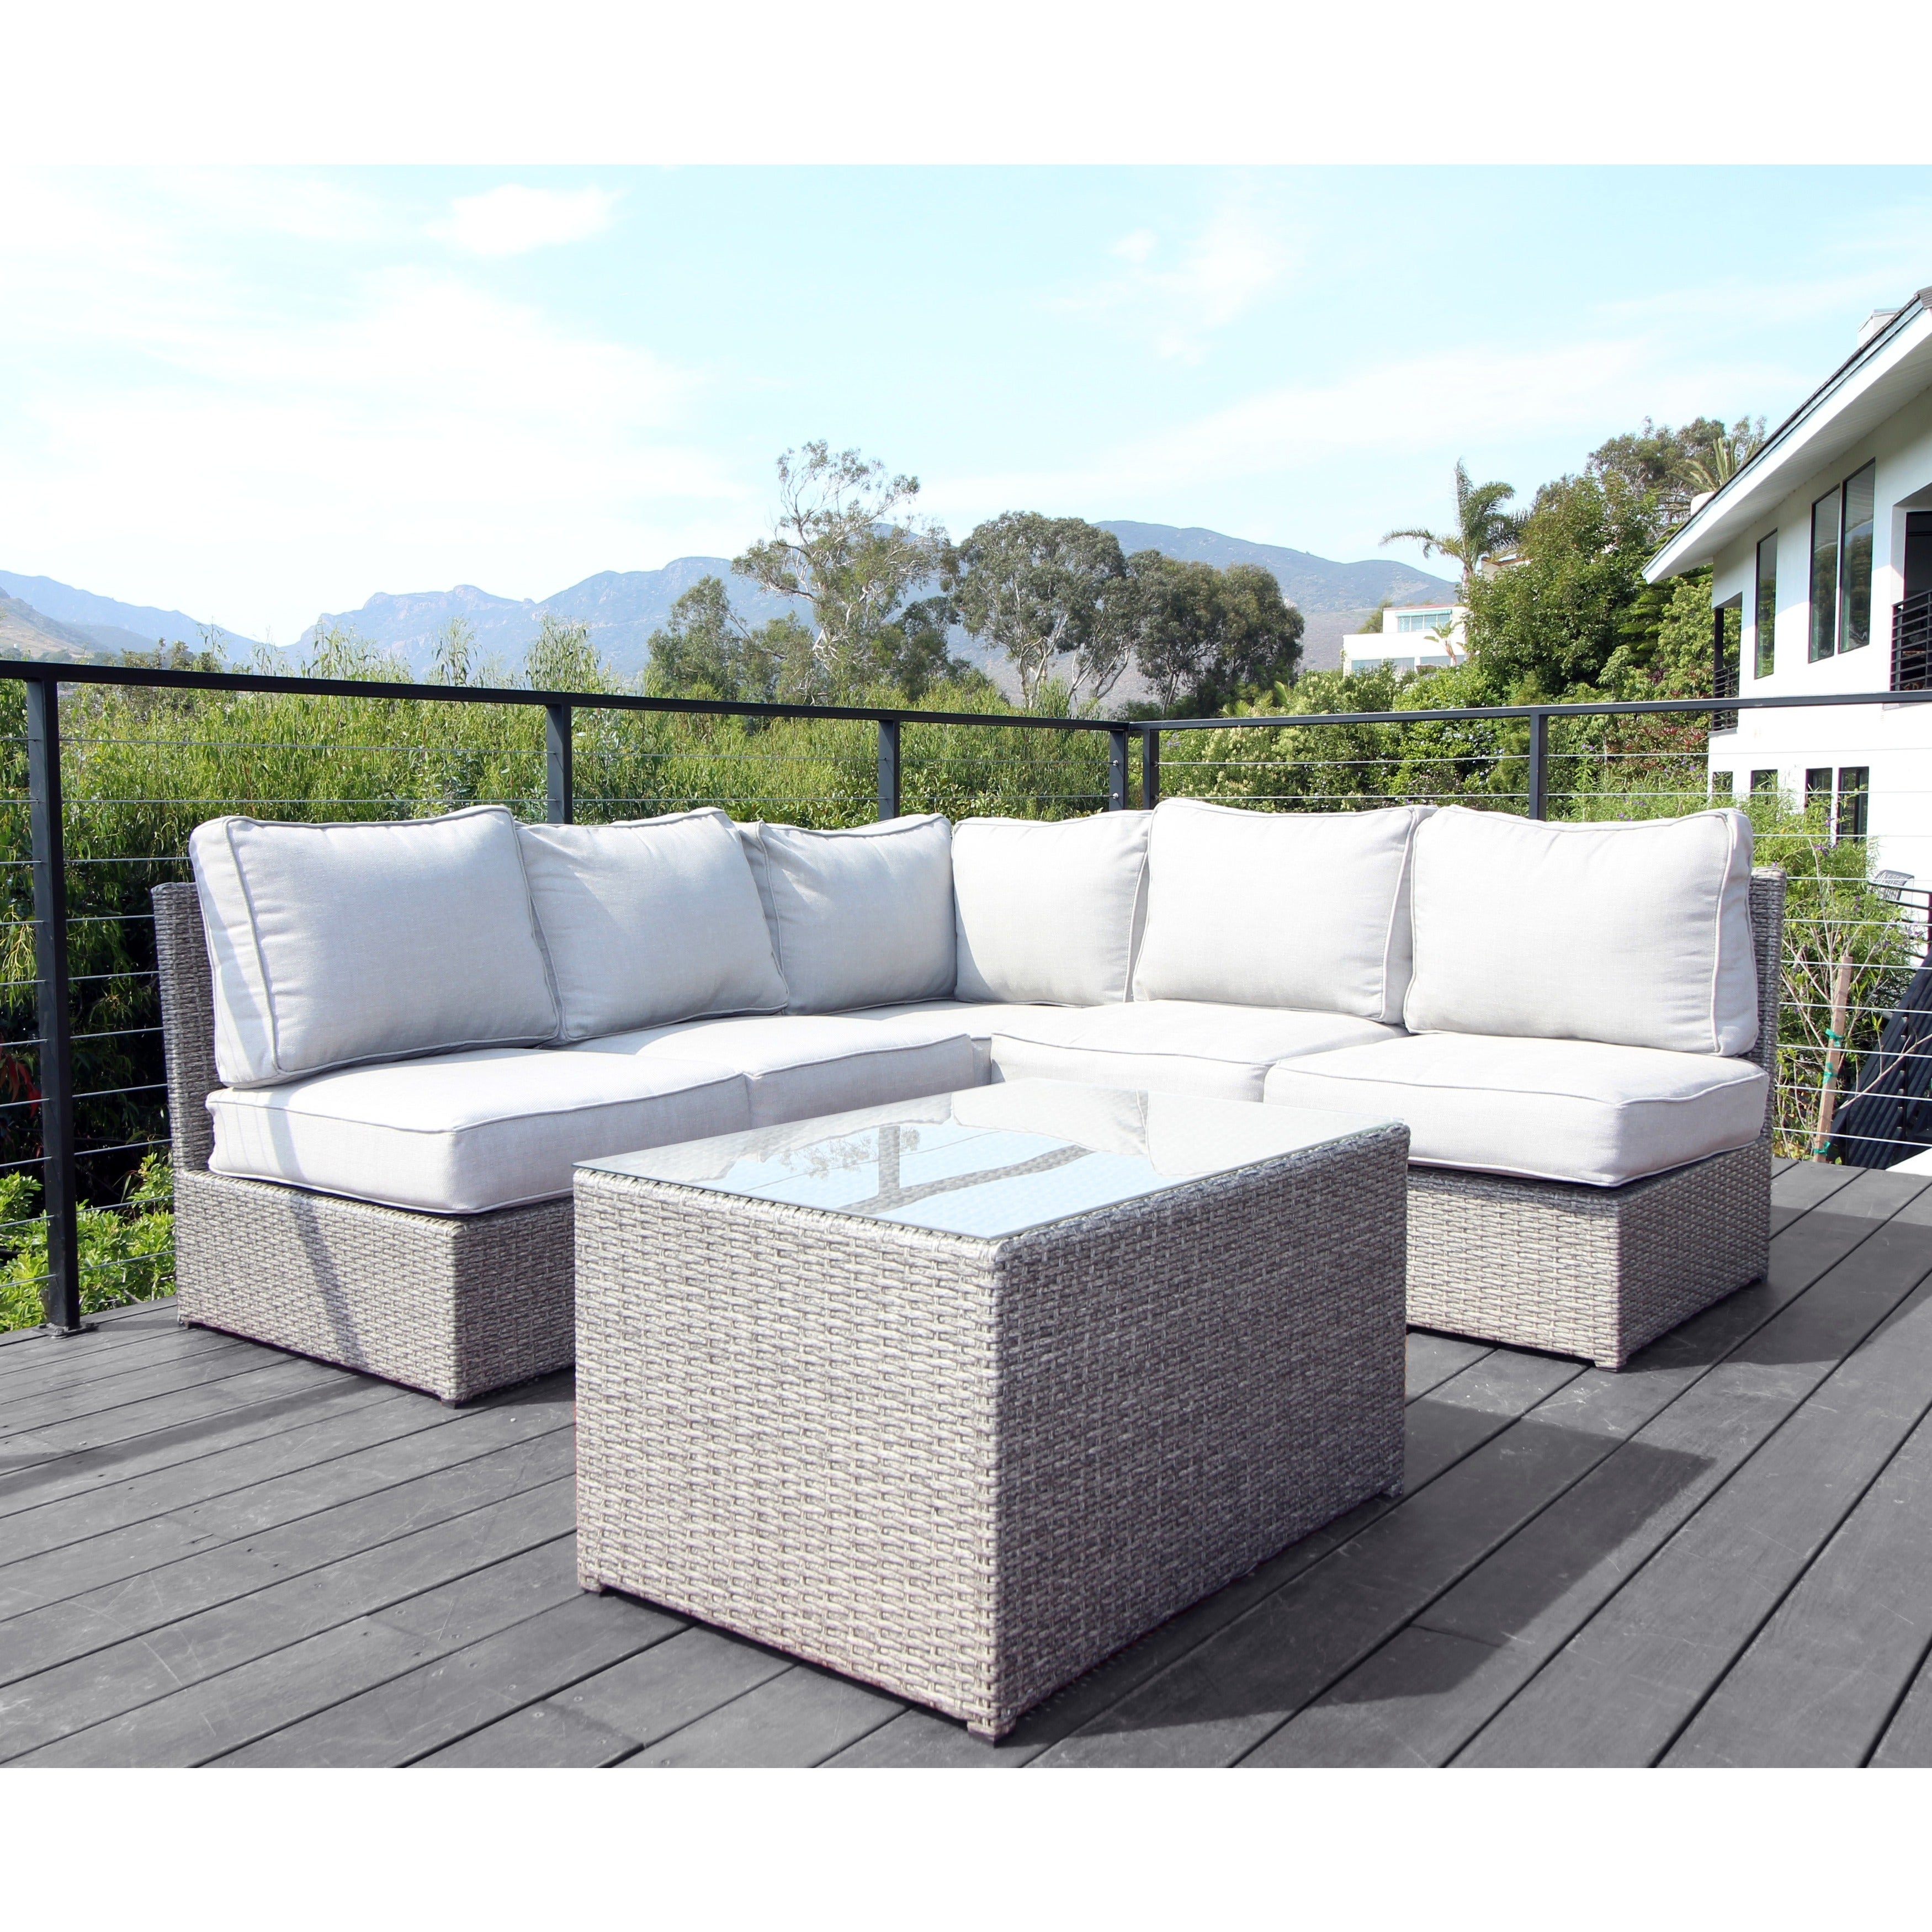 Chelsea Outdoor Grey Wicker 6-piece Sectional Sofa Set by Living ...